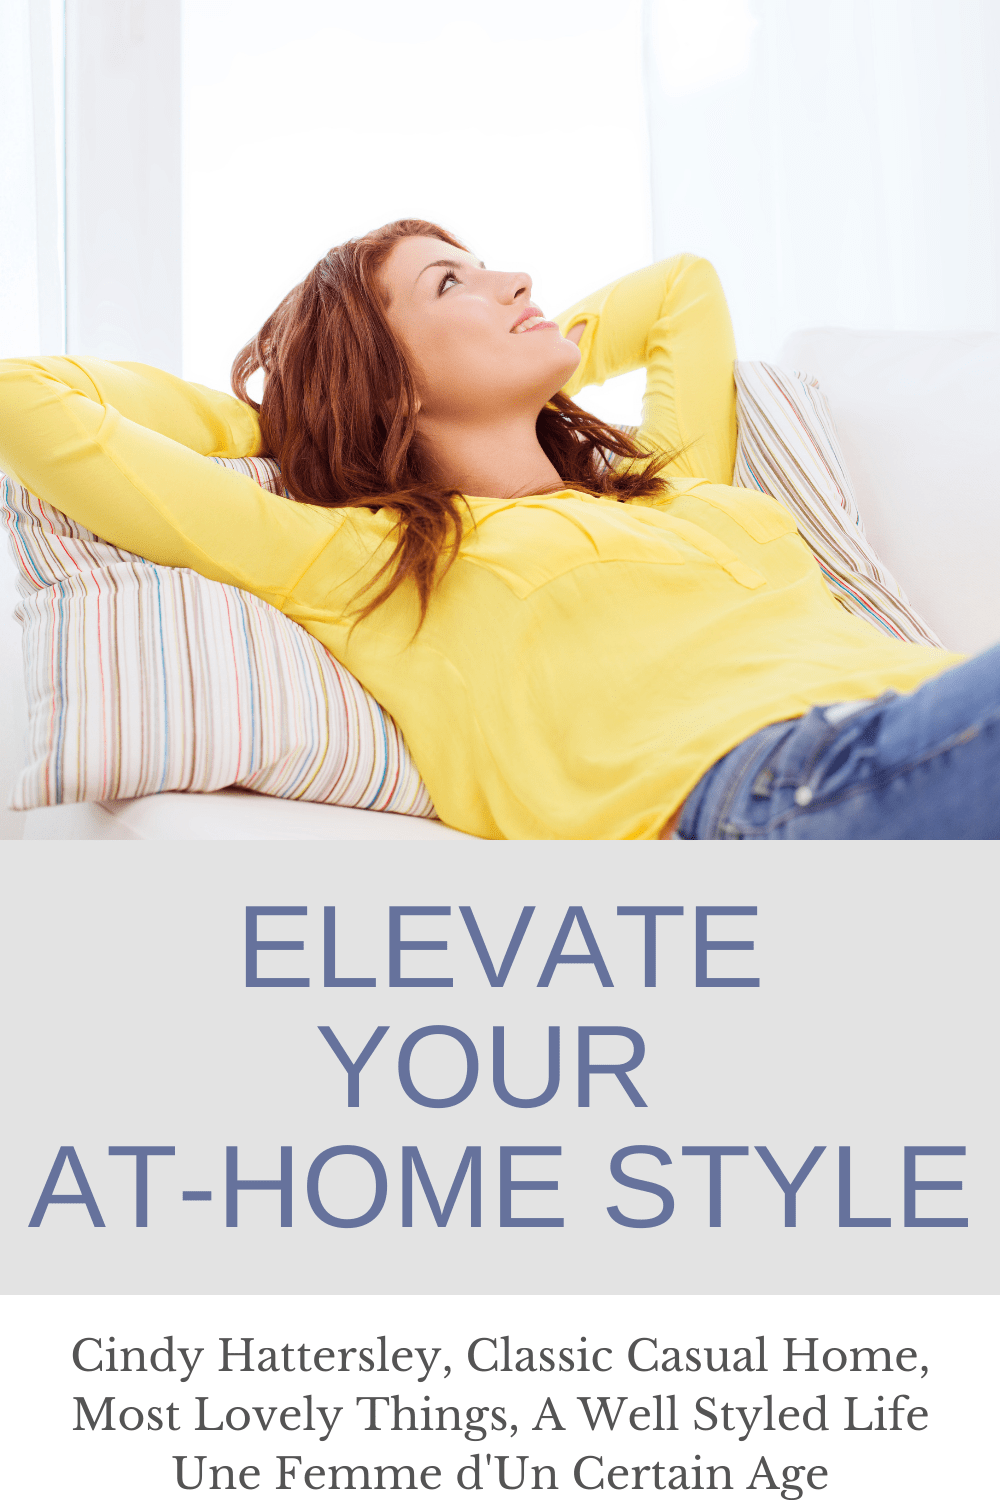 ELevate your at home style